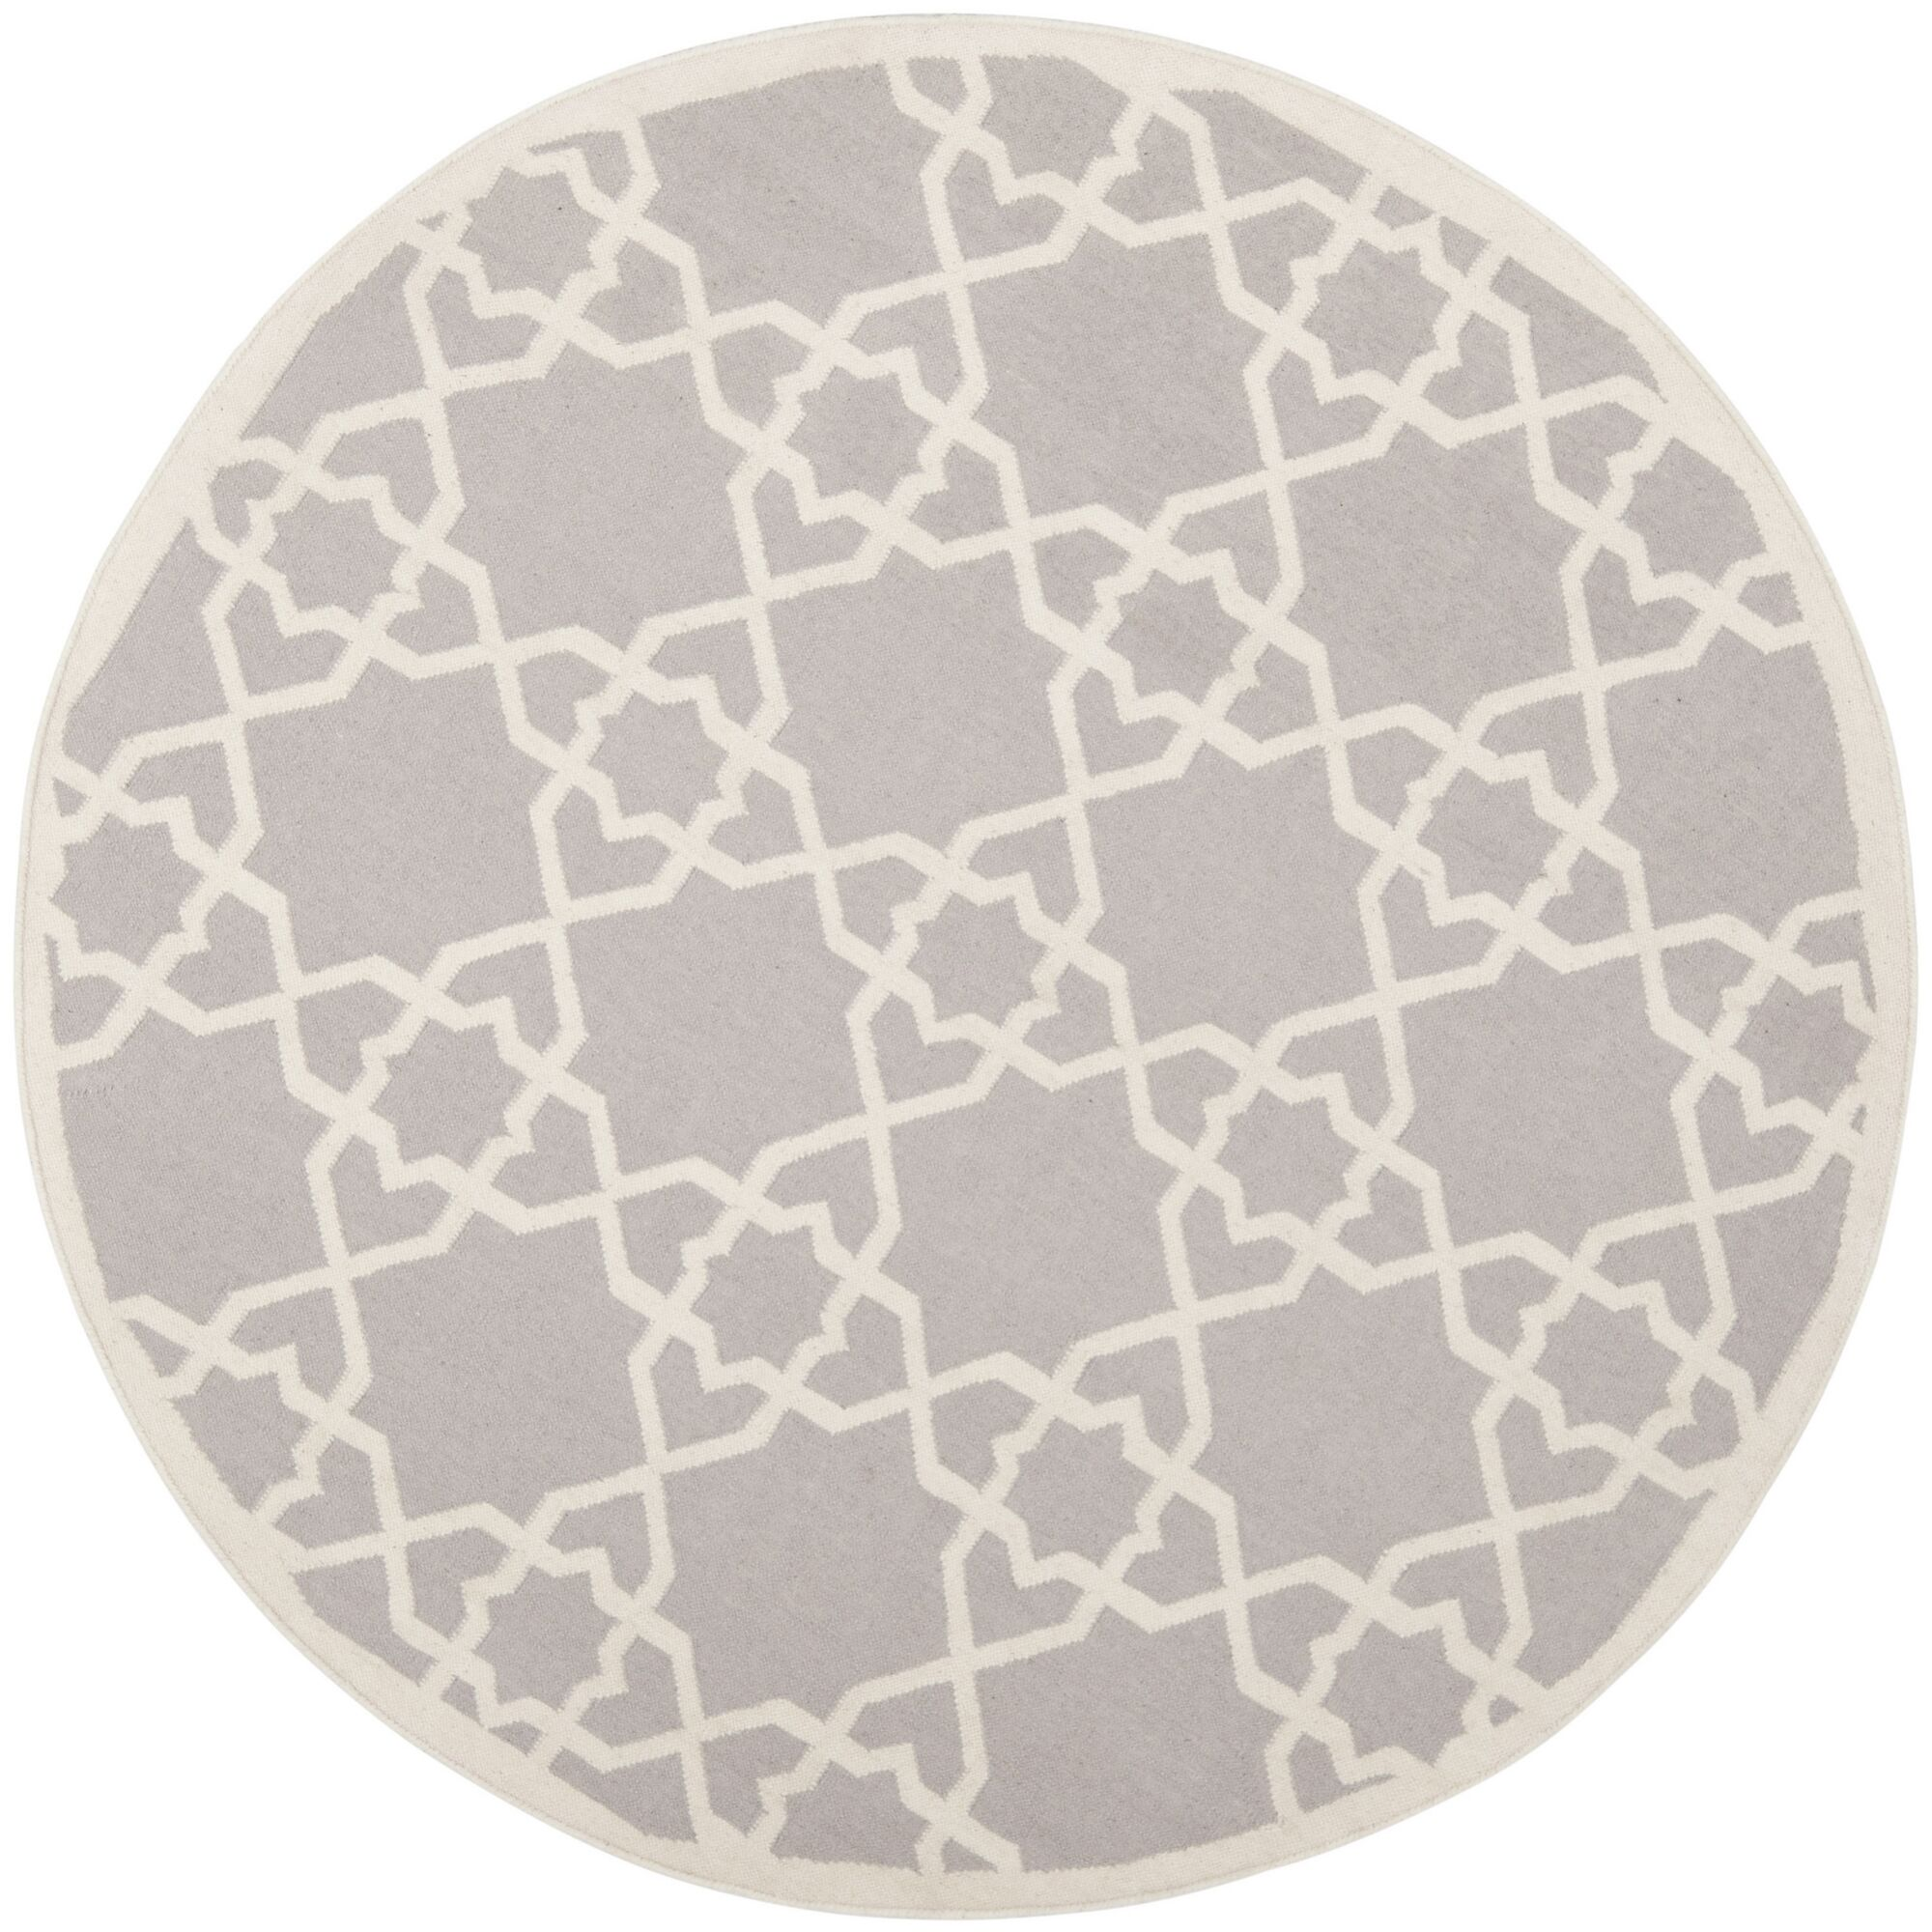 Dhurries Hand-Woven Wool Purple/Ivory Area Rug Rug Size: Round 8'